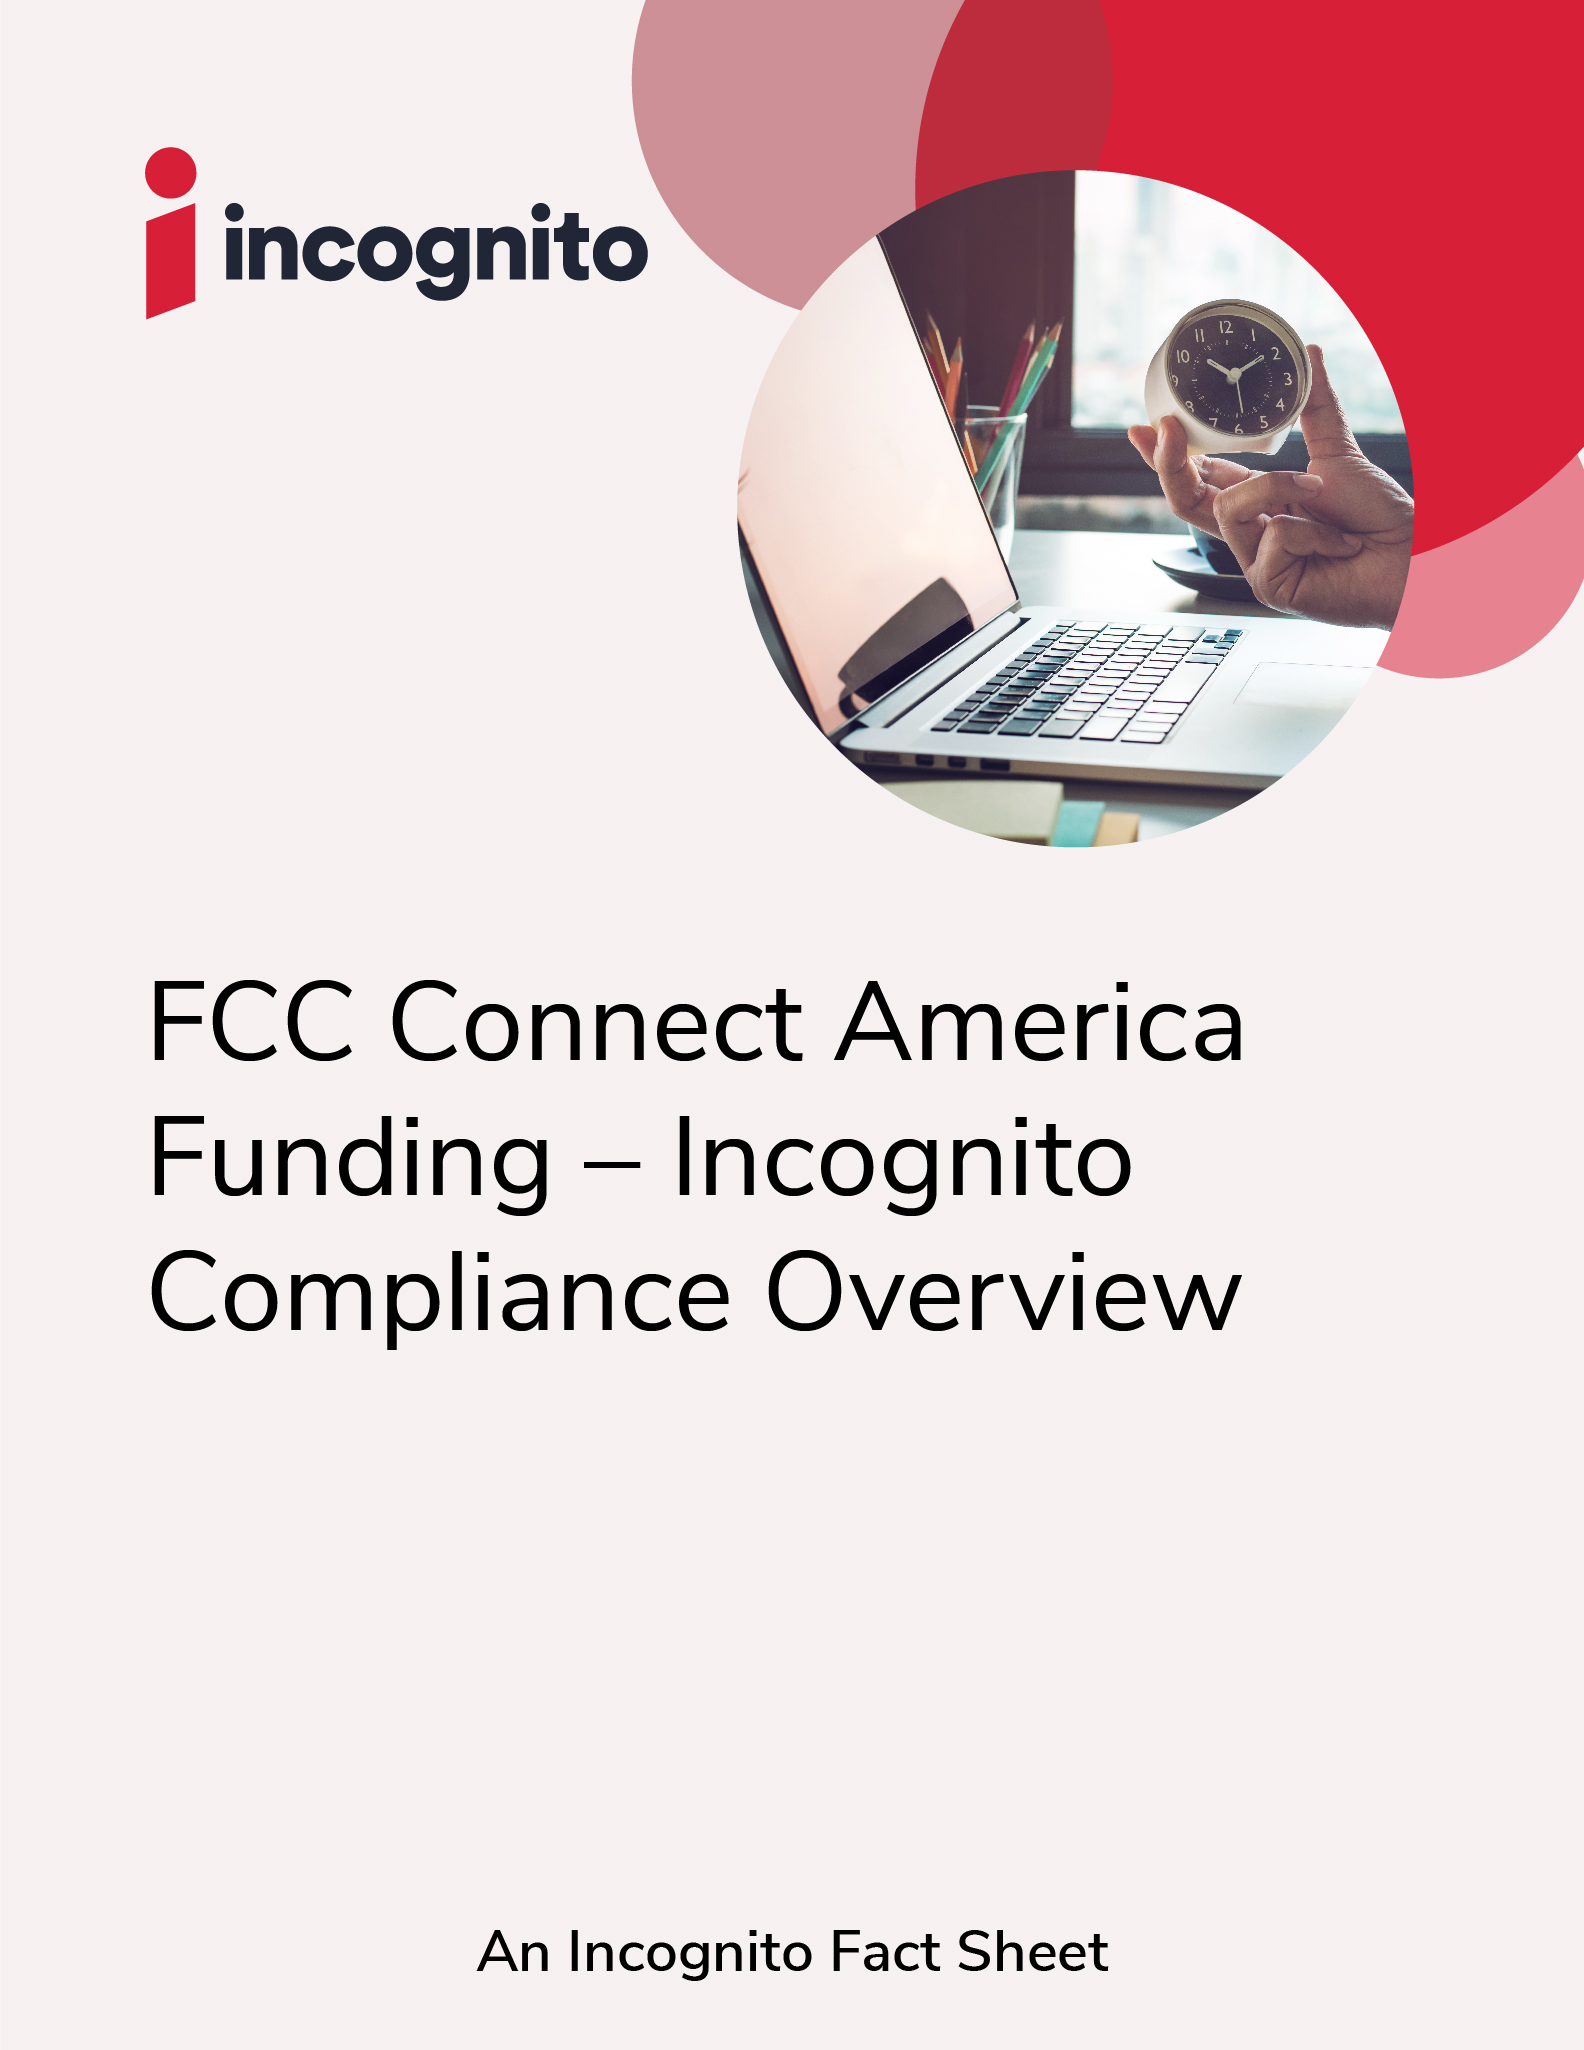 Incognito FCC compliance fact sheet